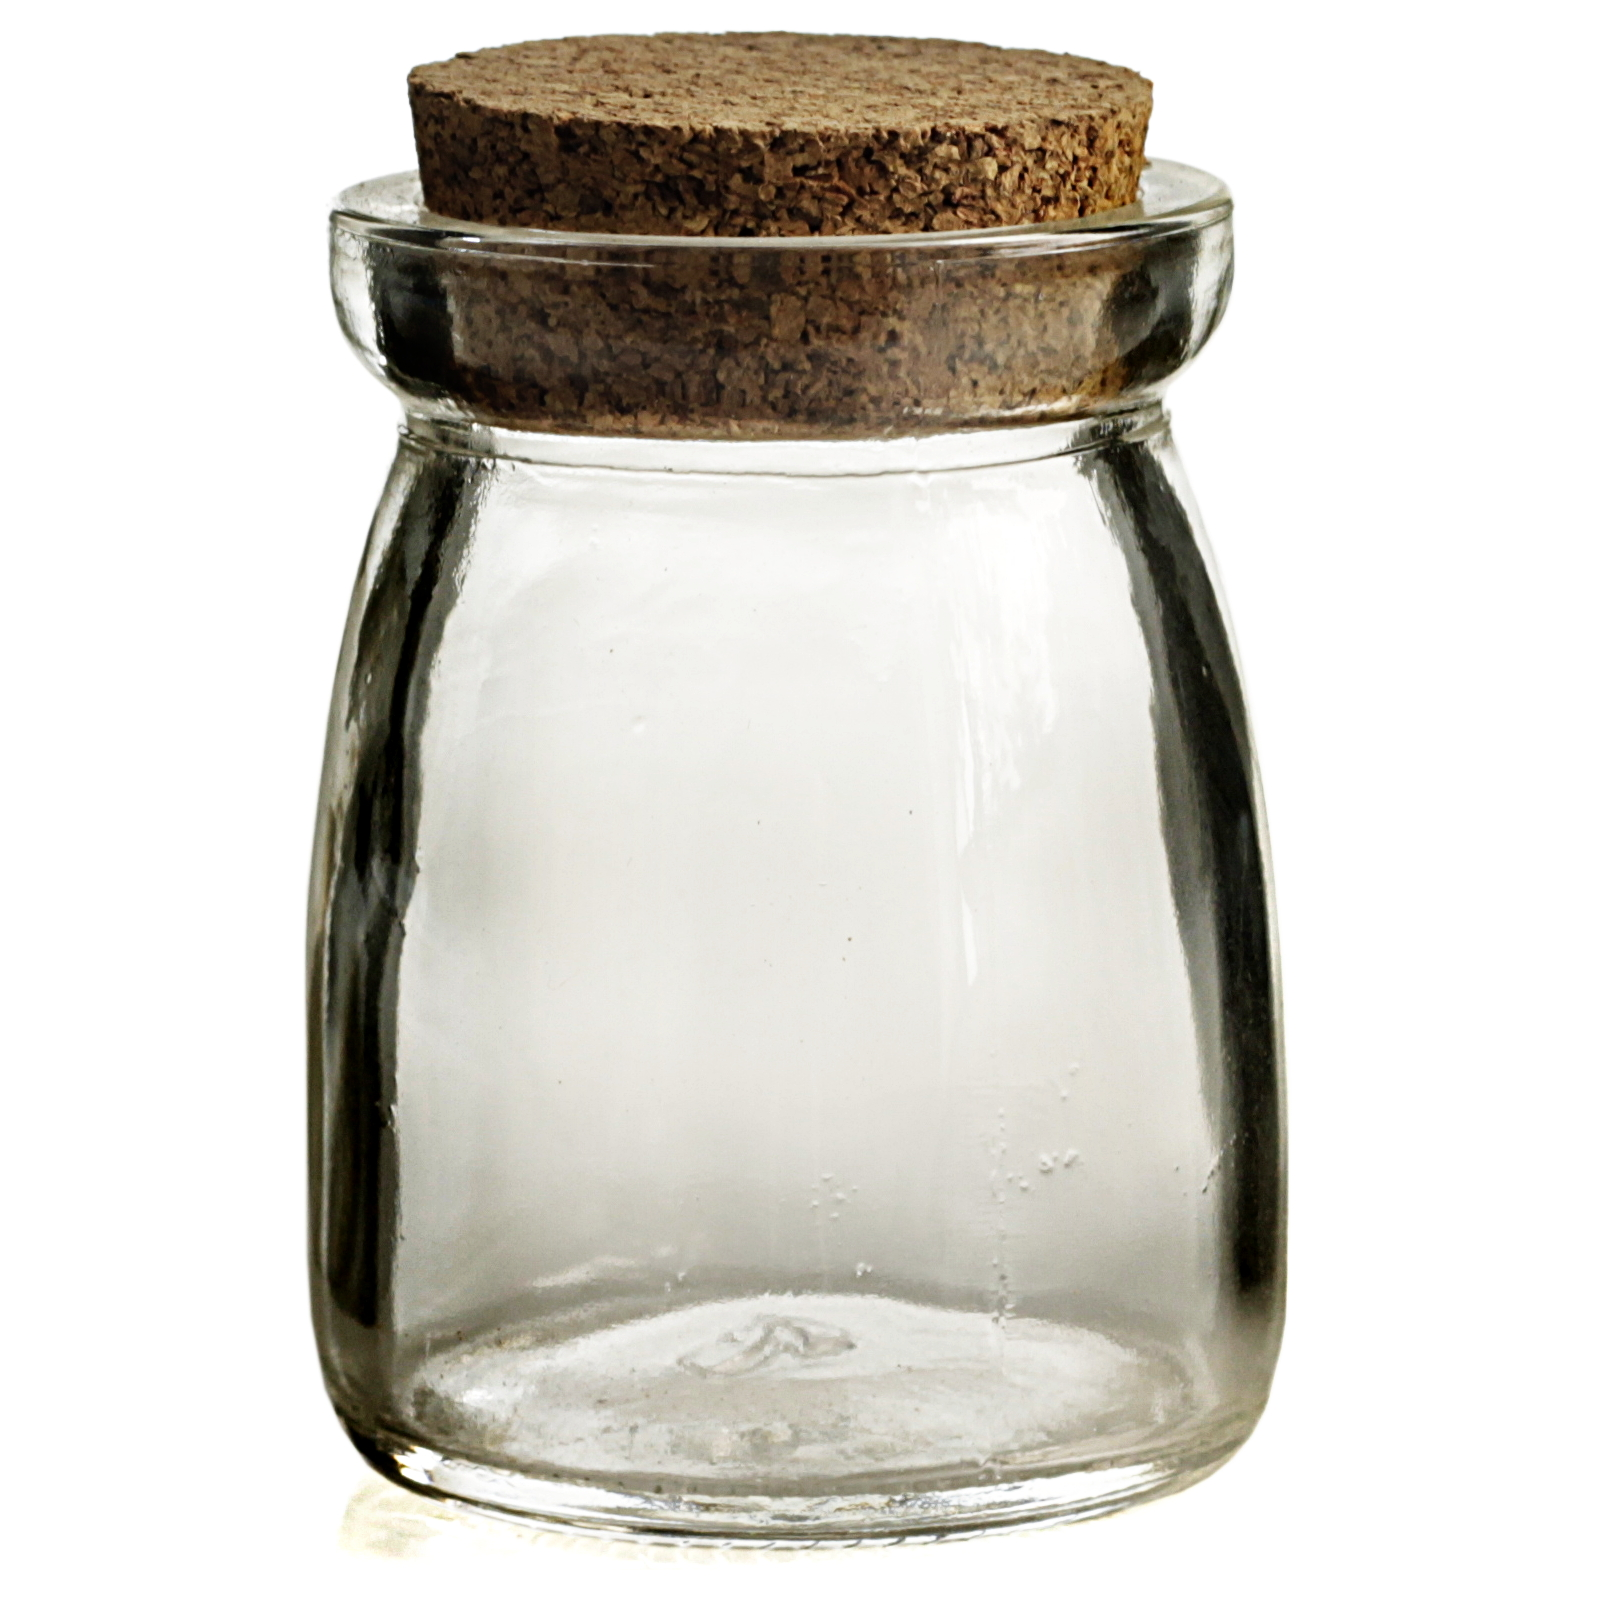 Grant Howard Glass 3.4 Ounce Conical Spice Jar, Set of 12